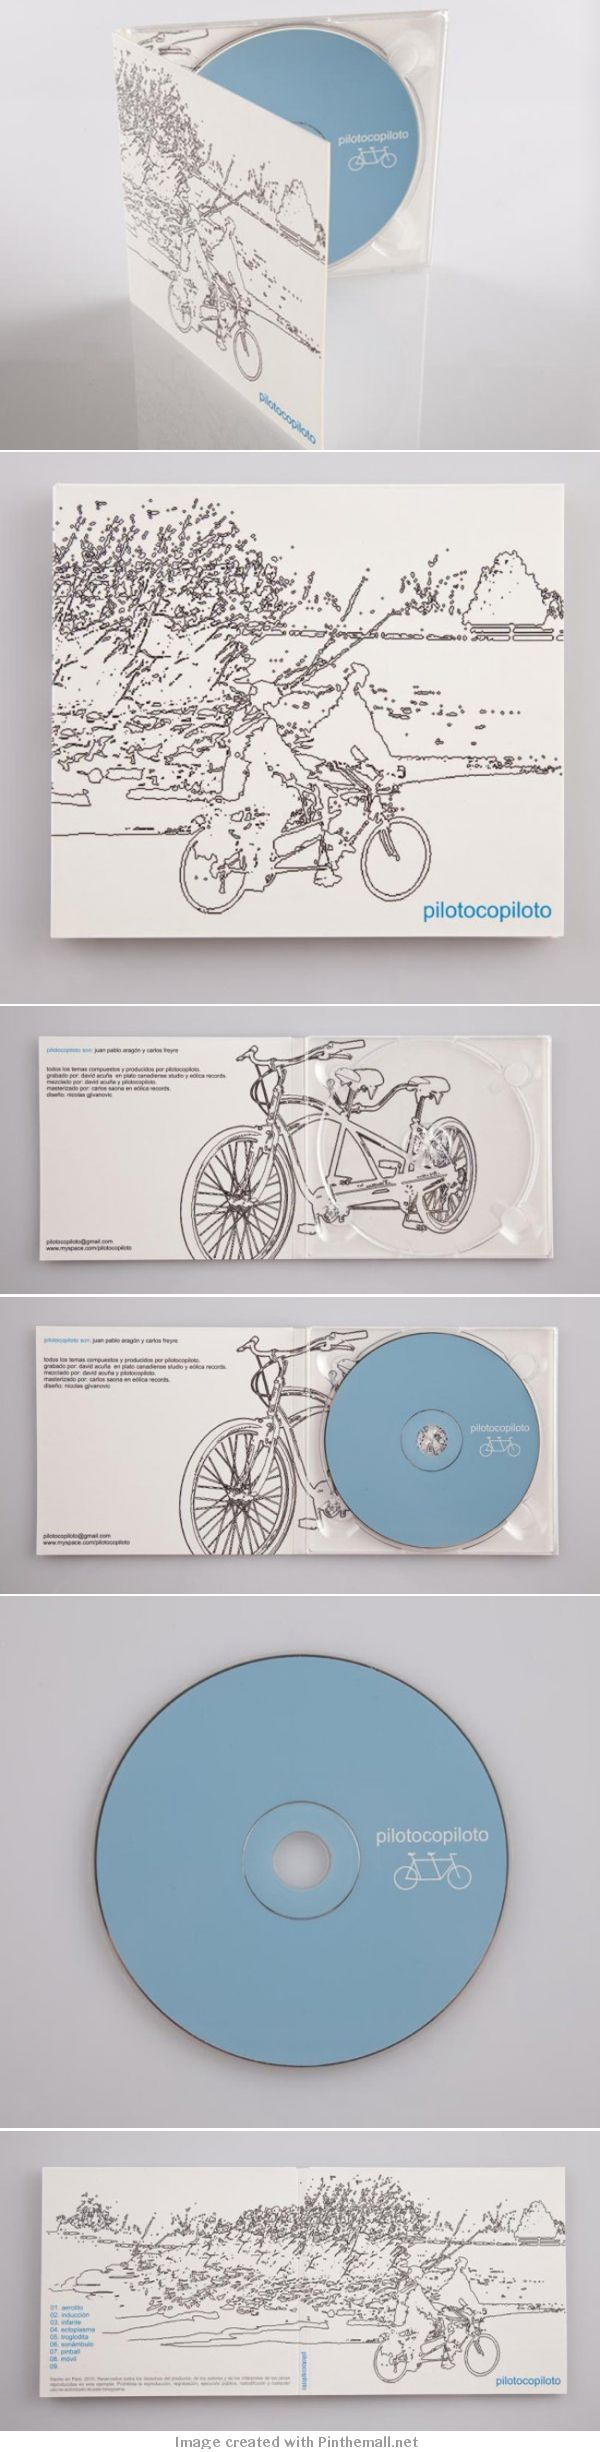 Wow! Check out this gorgeous illustrated album artwork from Pilotocopiloto!